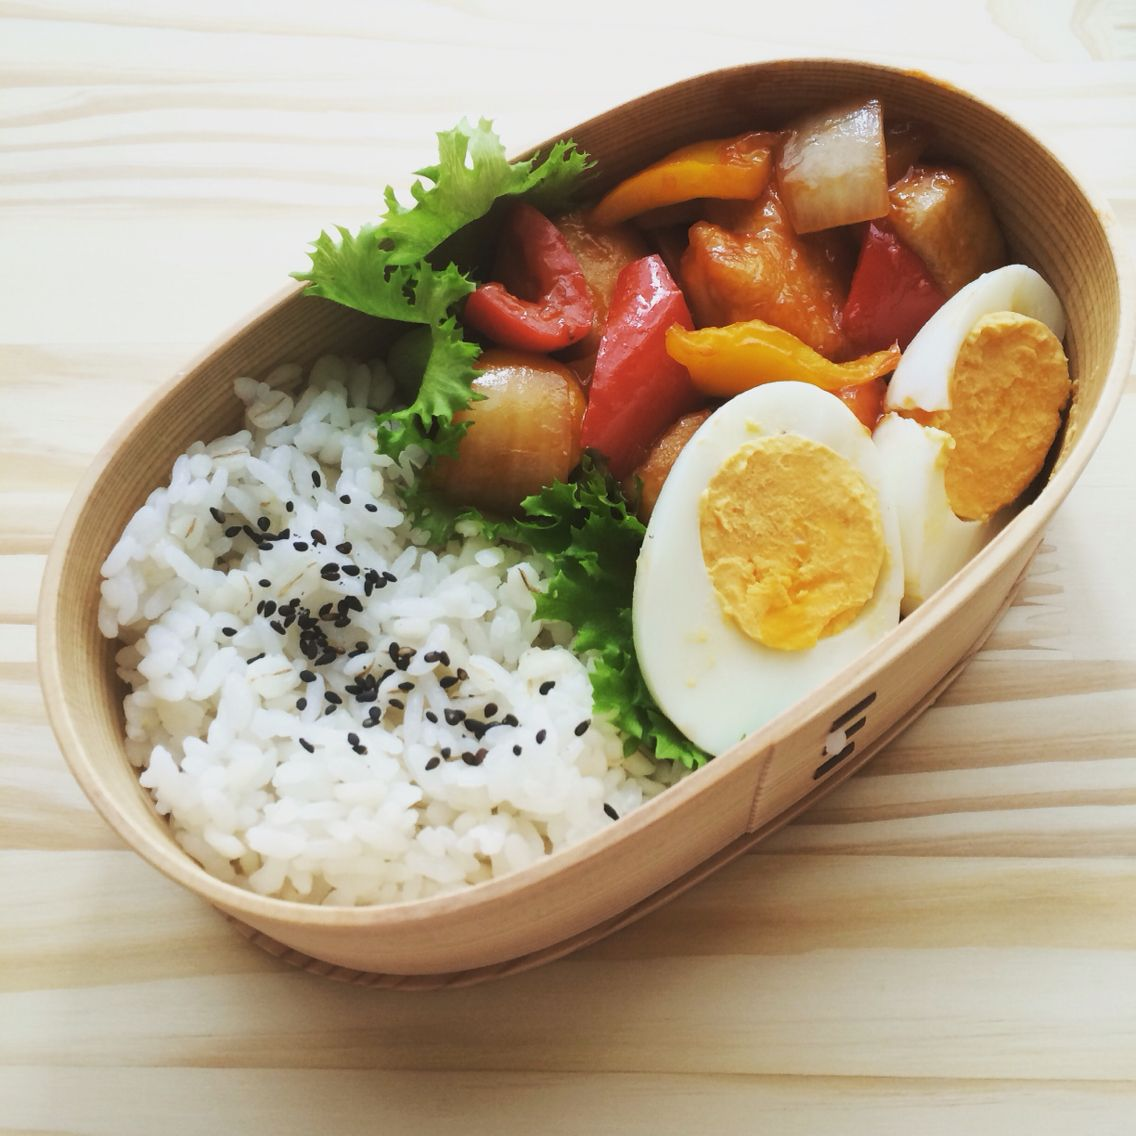 Bento box (magewappa) Sautéed chicken and vegetables with sweet and sour sauce)  曲げわっぱでおべんとう。 酢鶏、ゆで卵、麦ごはん。